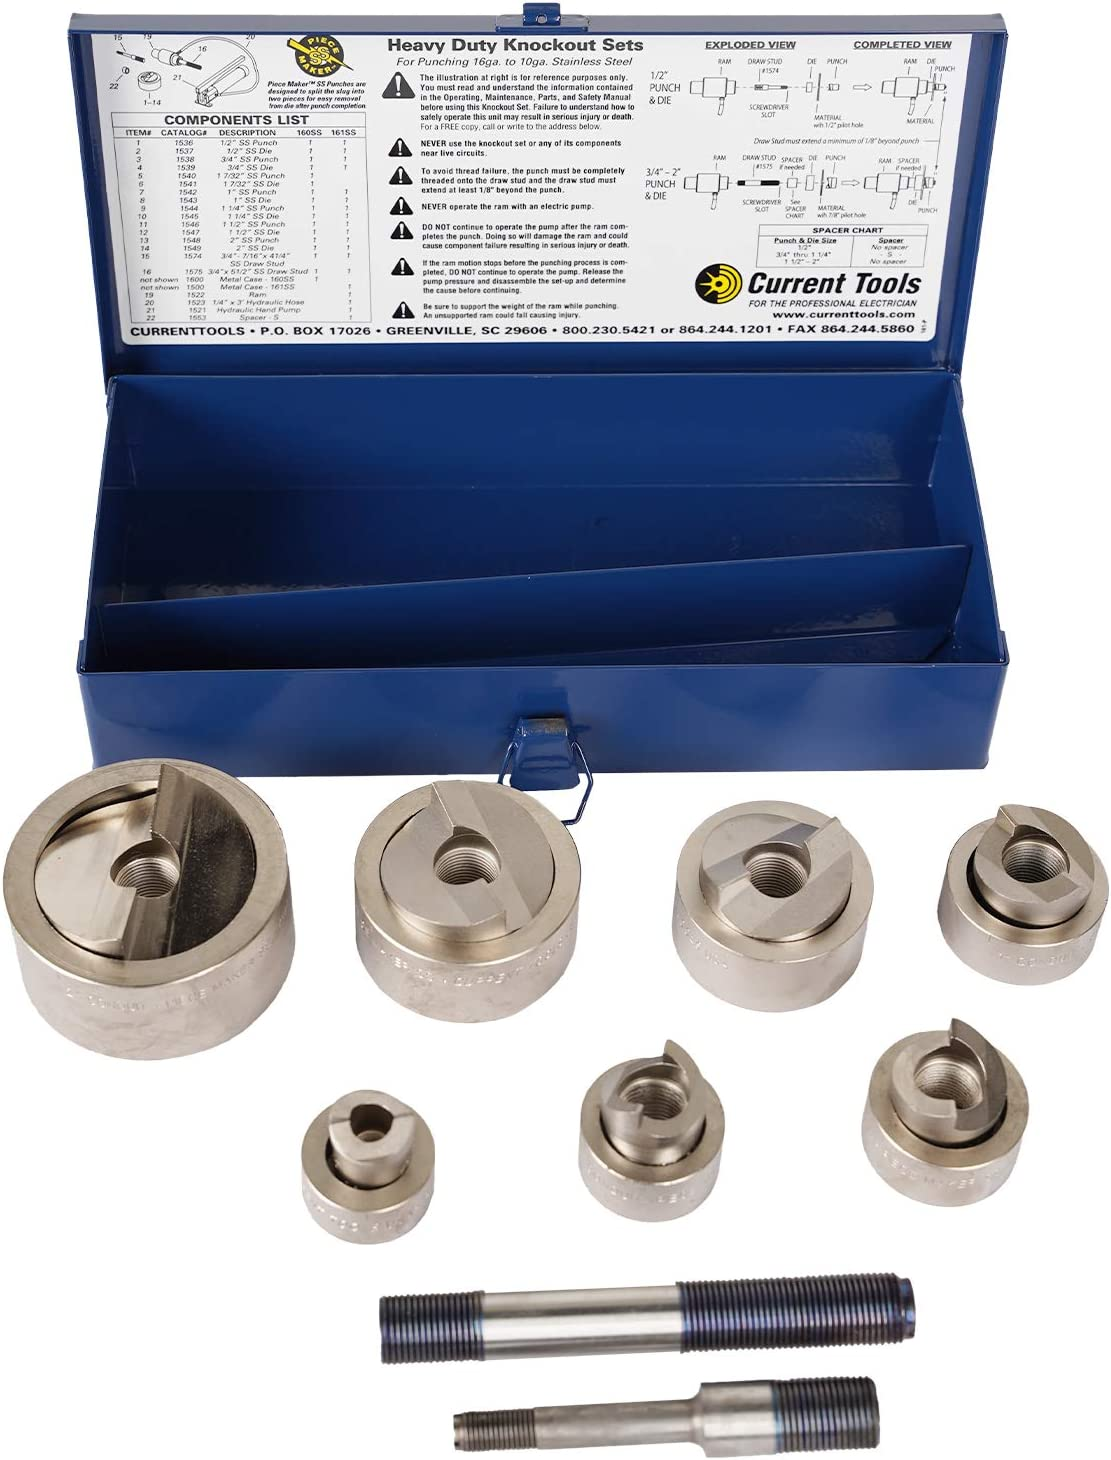 CURRENT TOOLS 160SS Knockout Set Super beauty product restock quality top for 1 Stainless - High quality 2